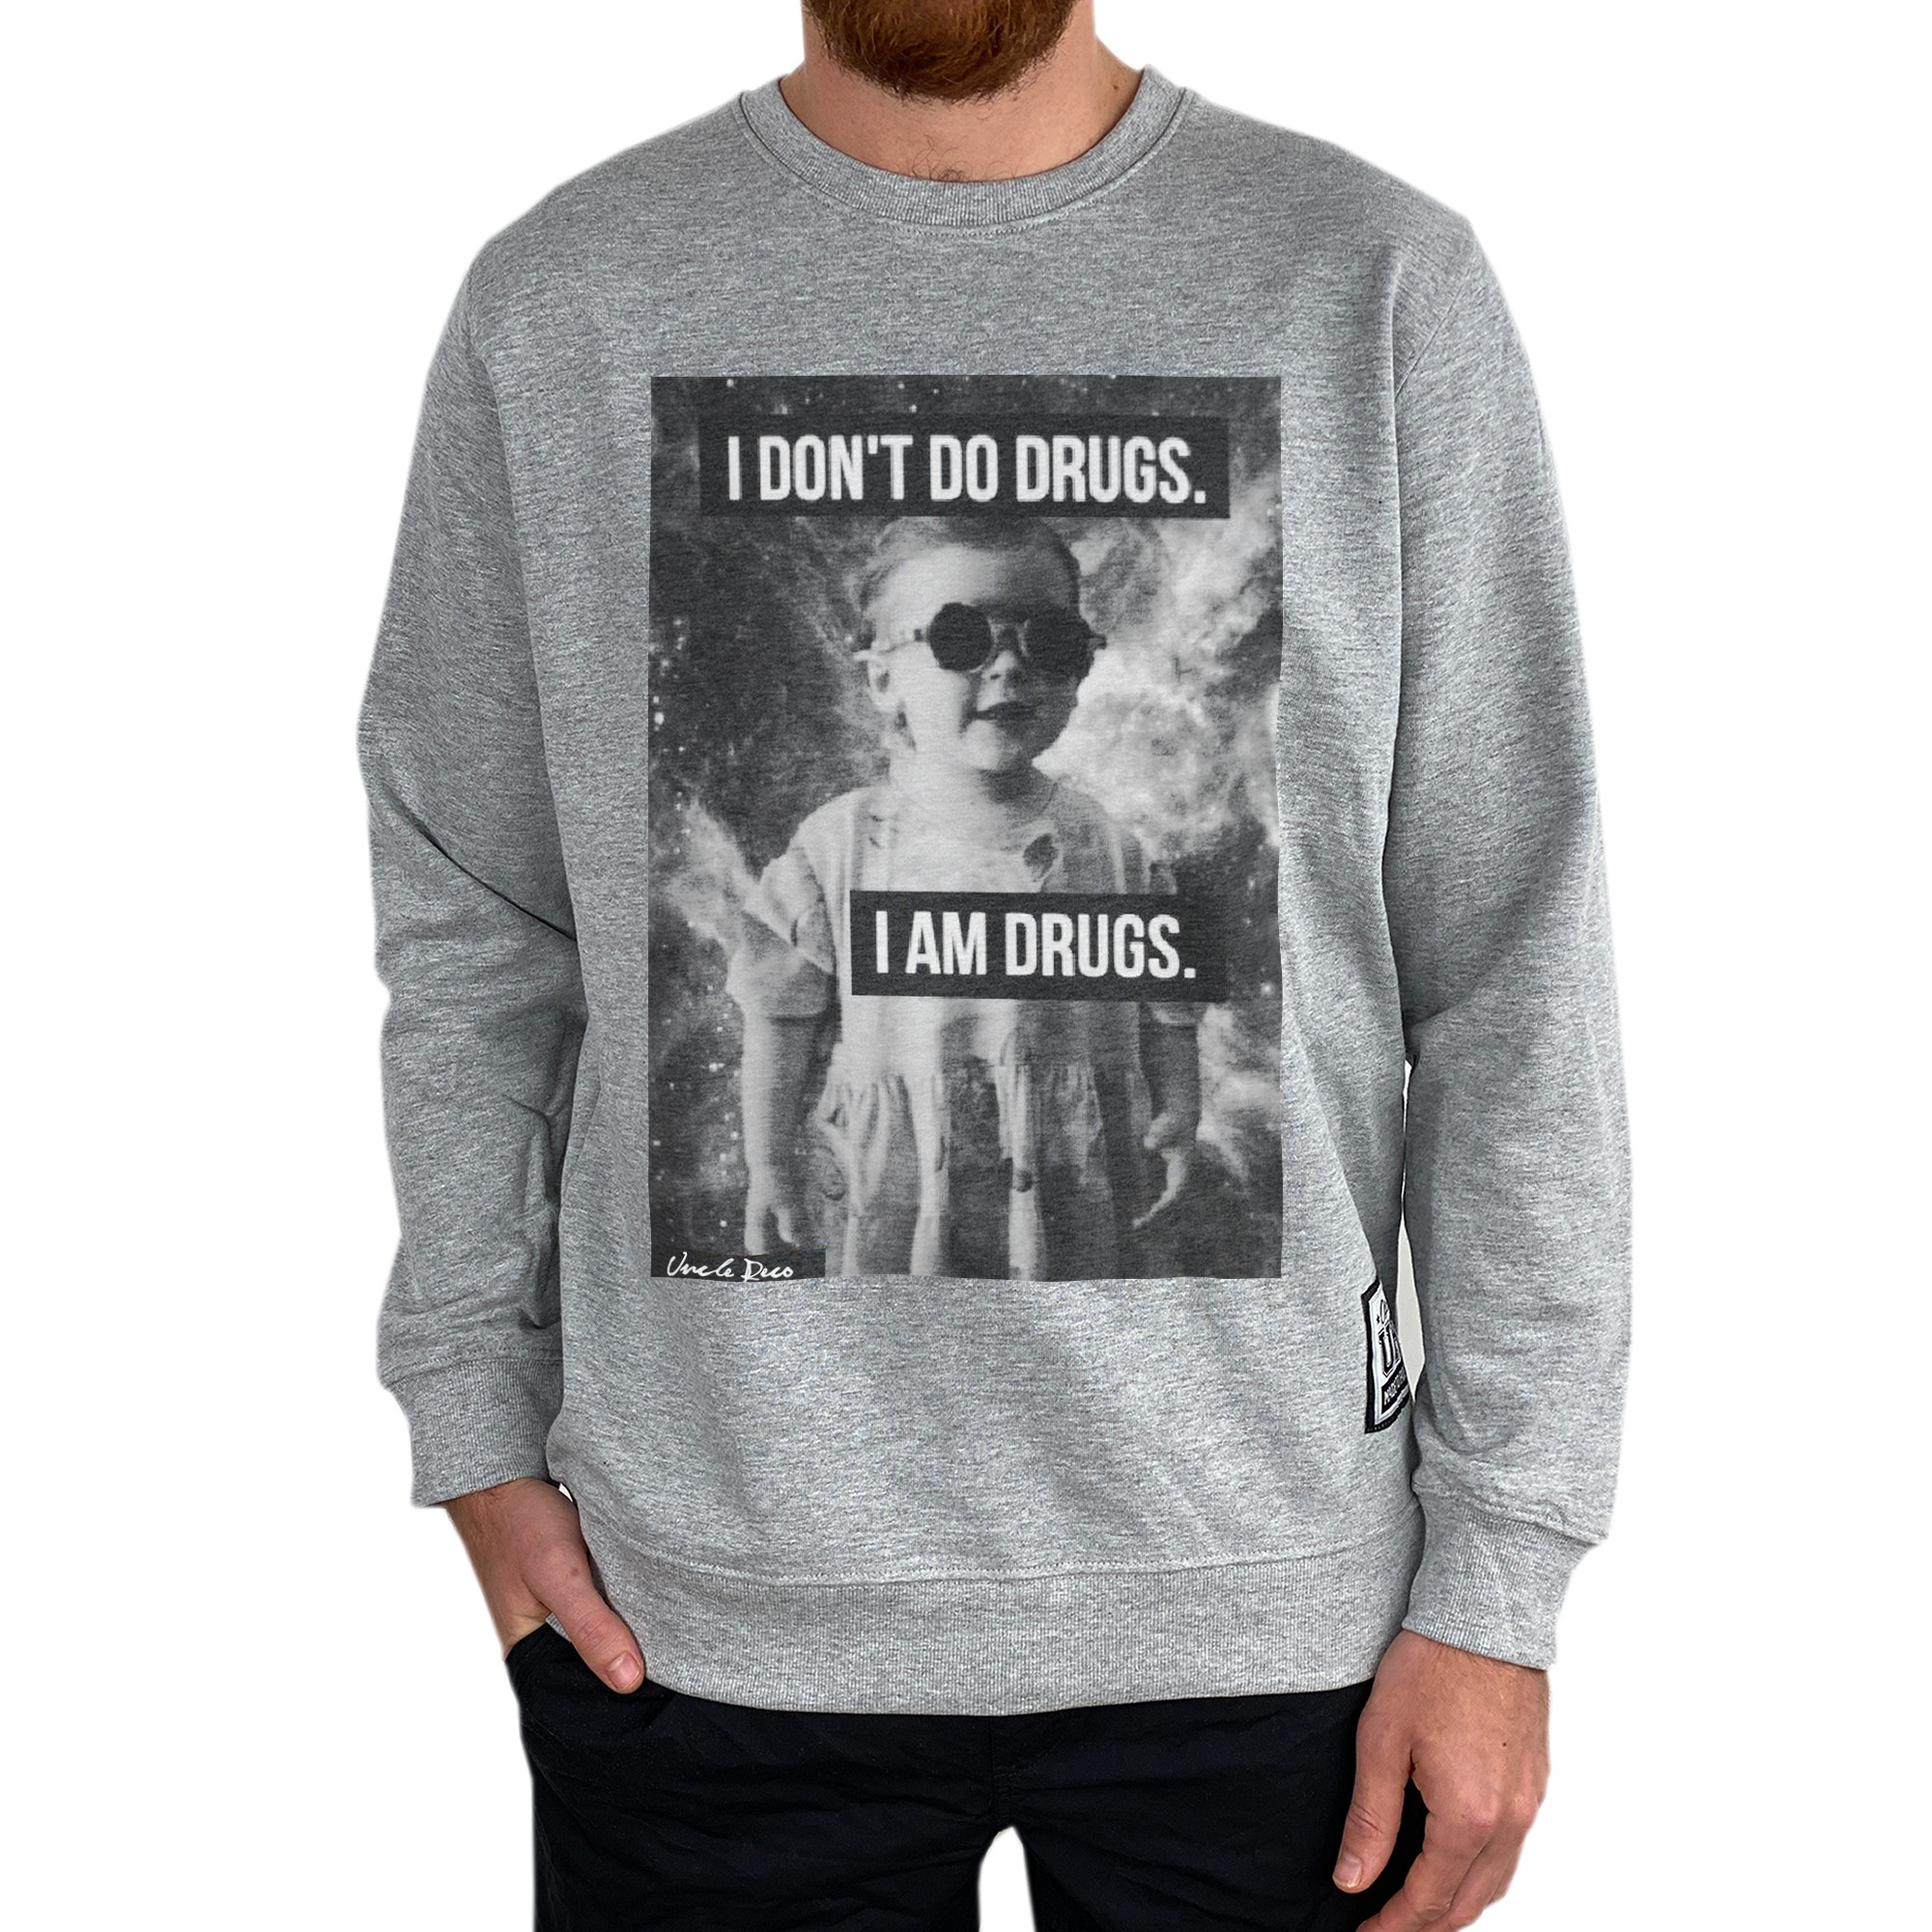 I DON'T DO DRUGS MARBLE GREY CREW